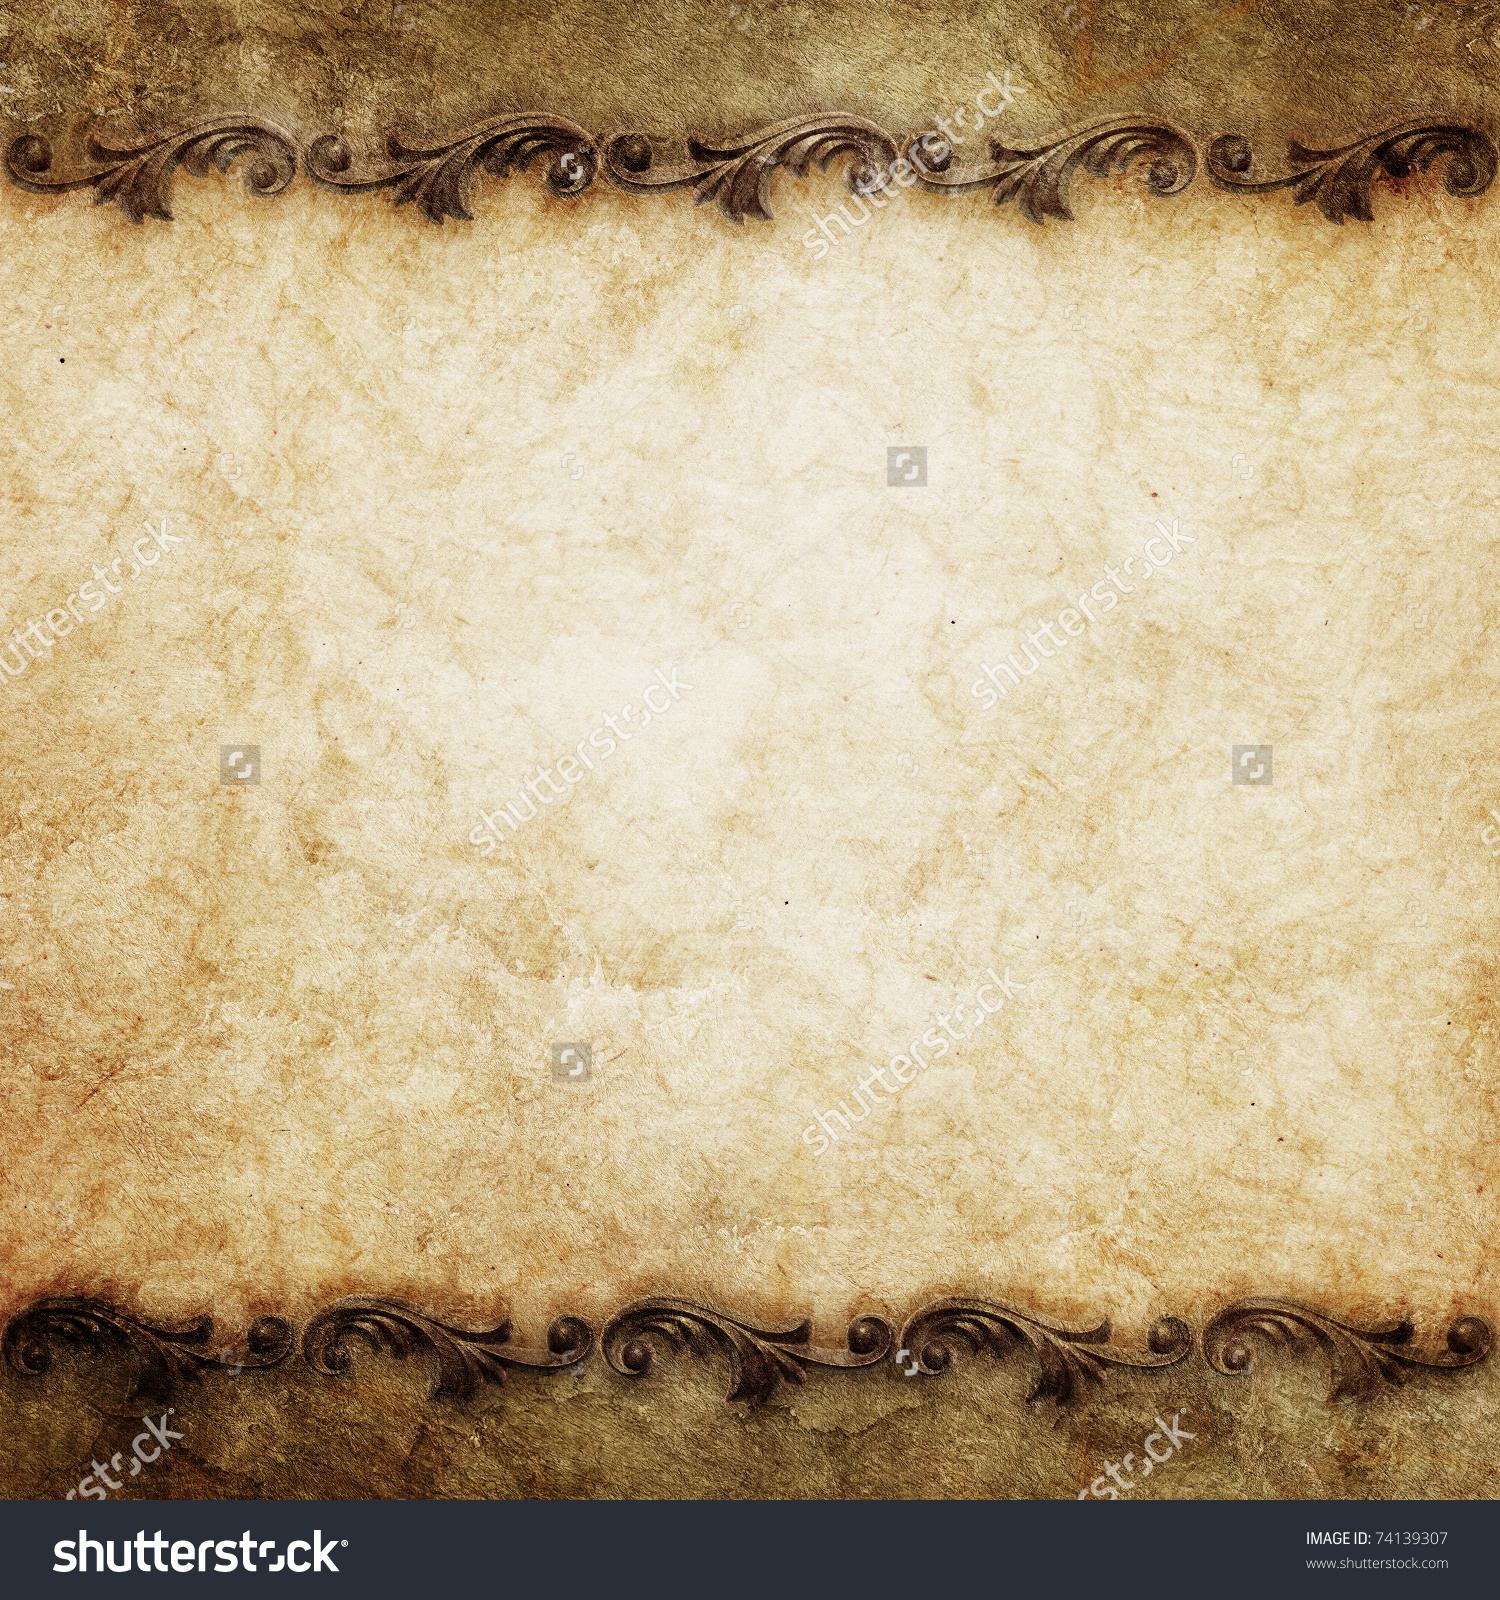 Vintage Background Ornate Frames Stock Illustration 74139307